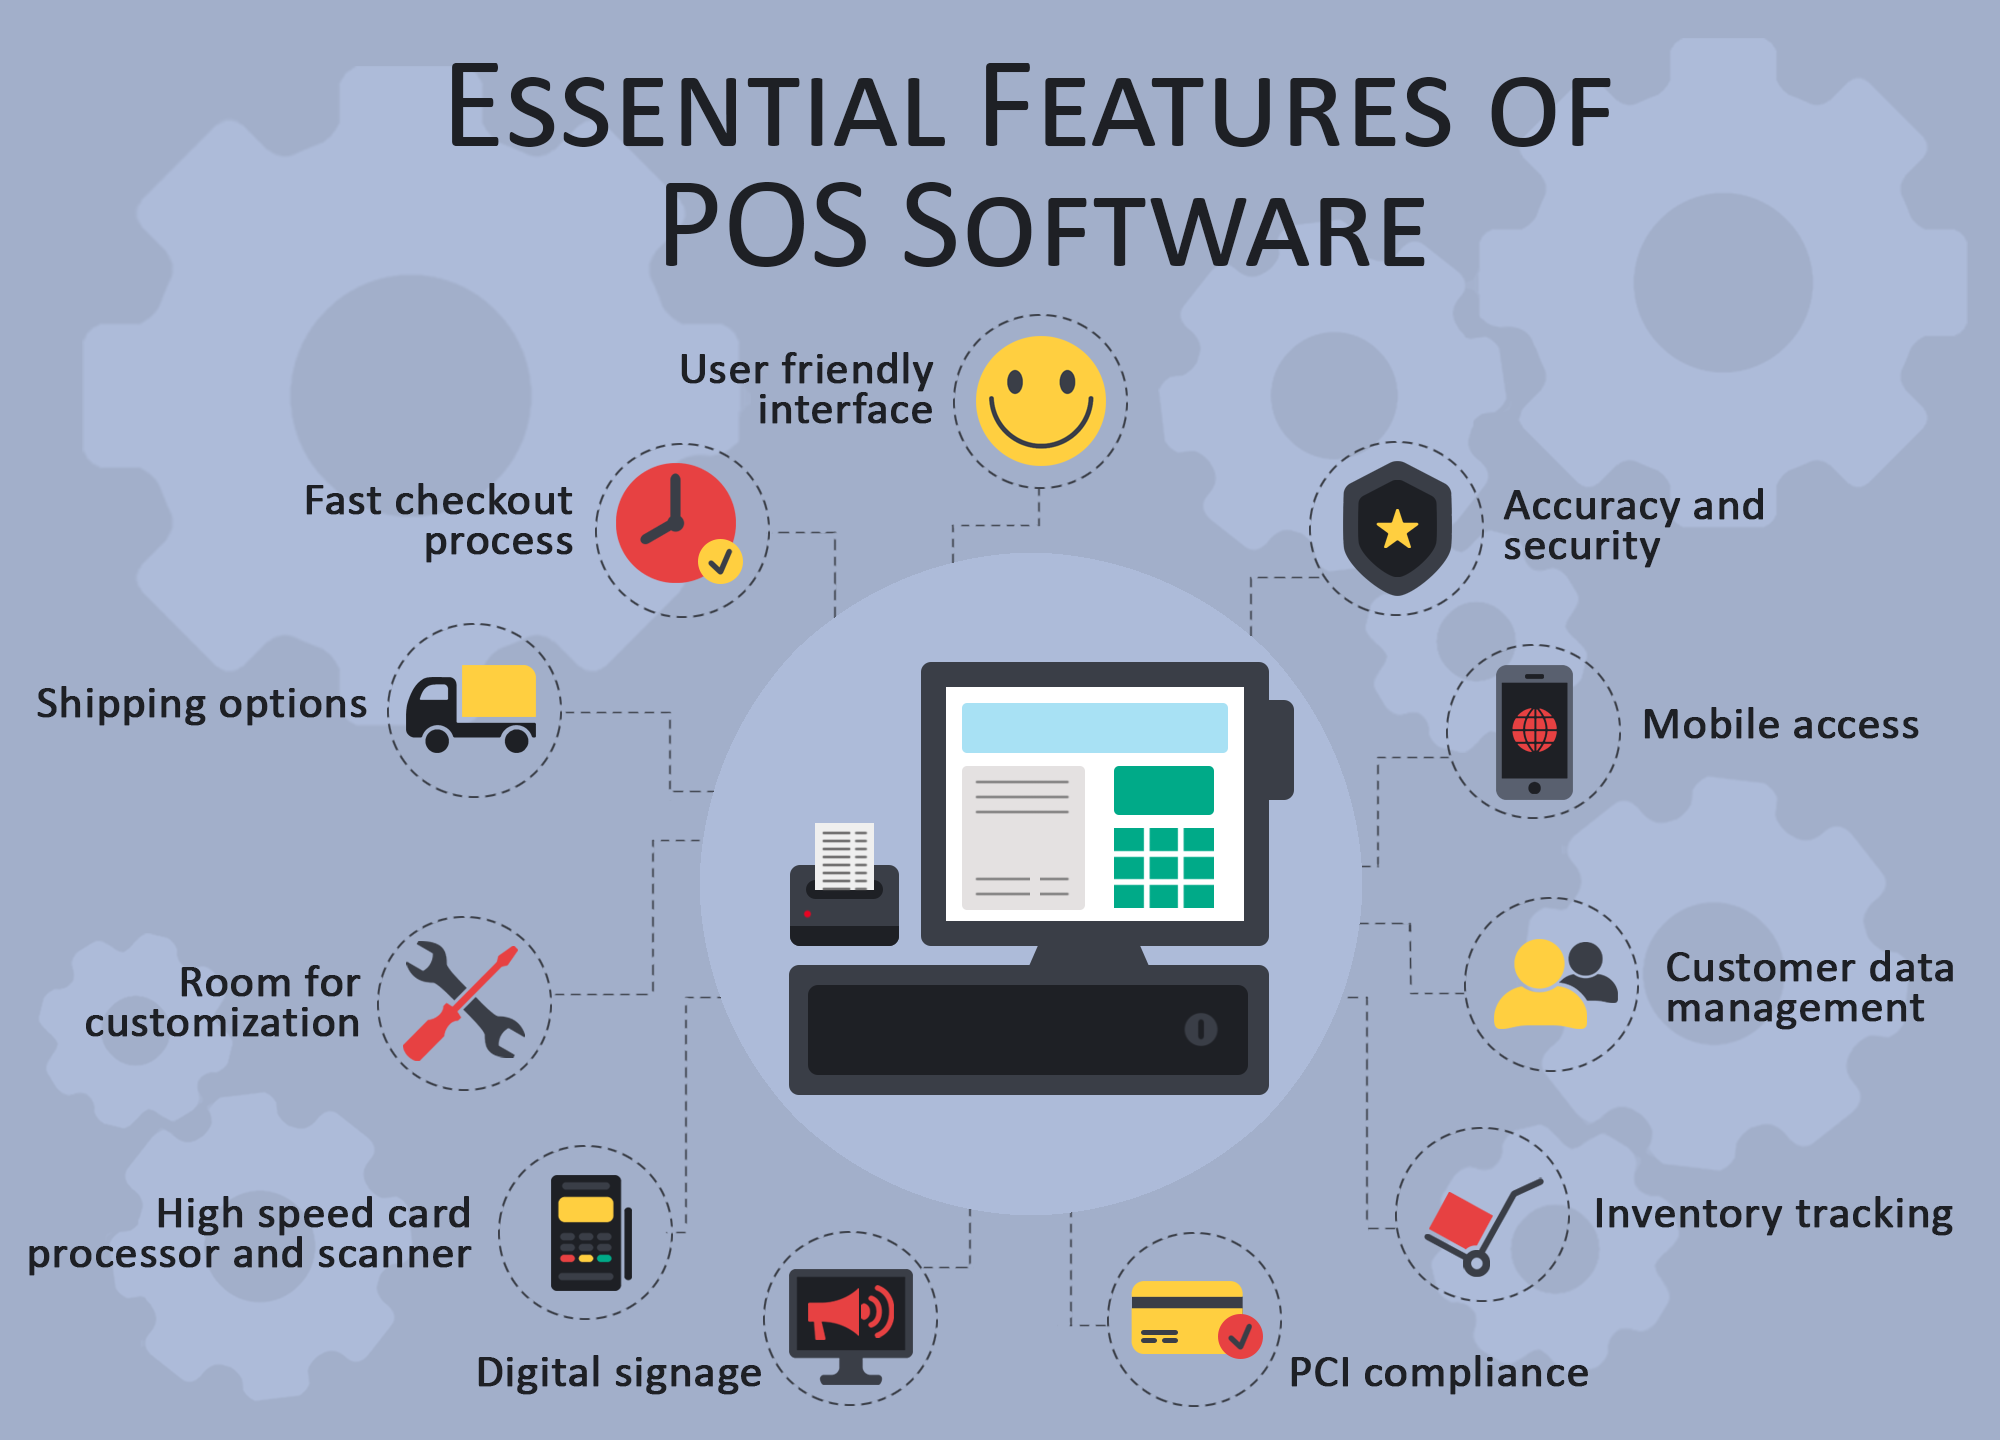 Essential Features of POS Software (Infographic)